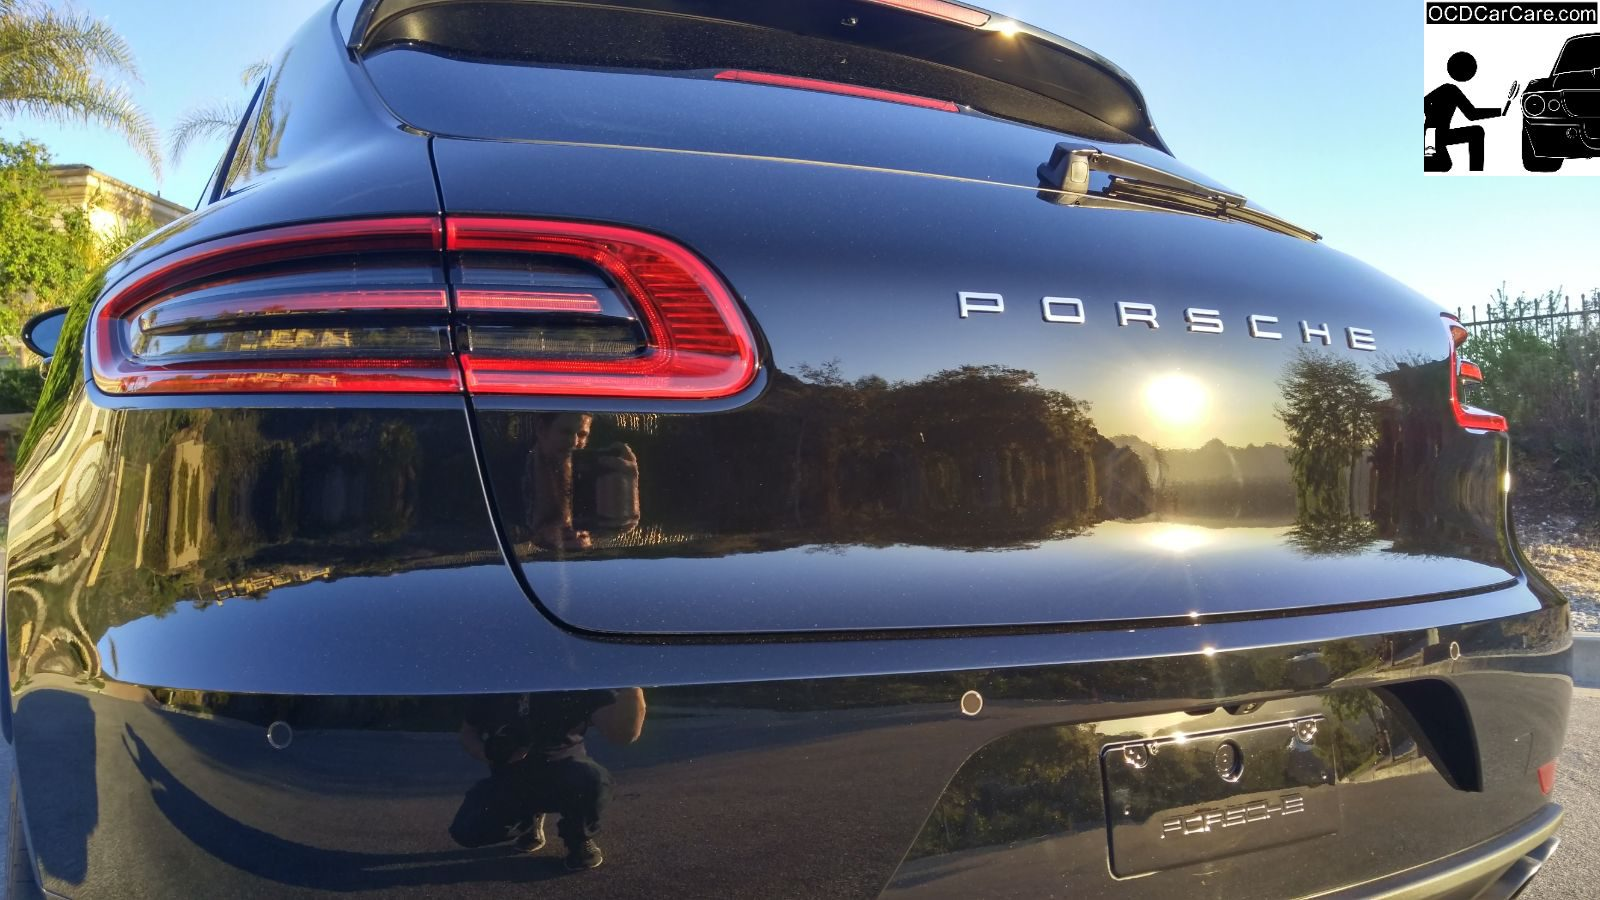 2016 Porsche Macan Reflects everything in sight after OCDCarCare Los Angeles full paint polishing & Ceramic Nano Coating.